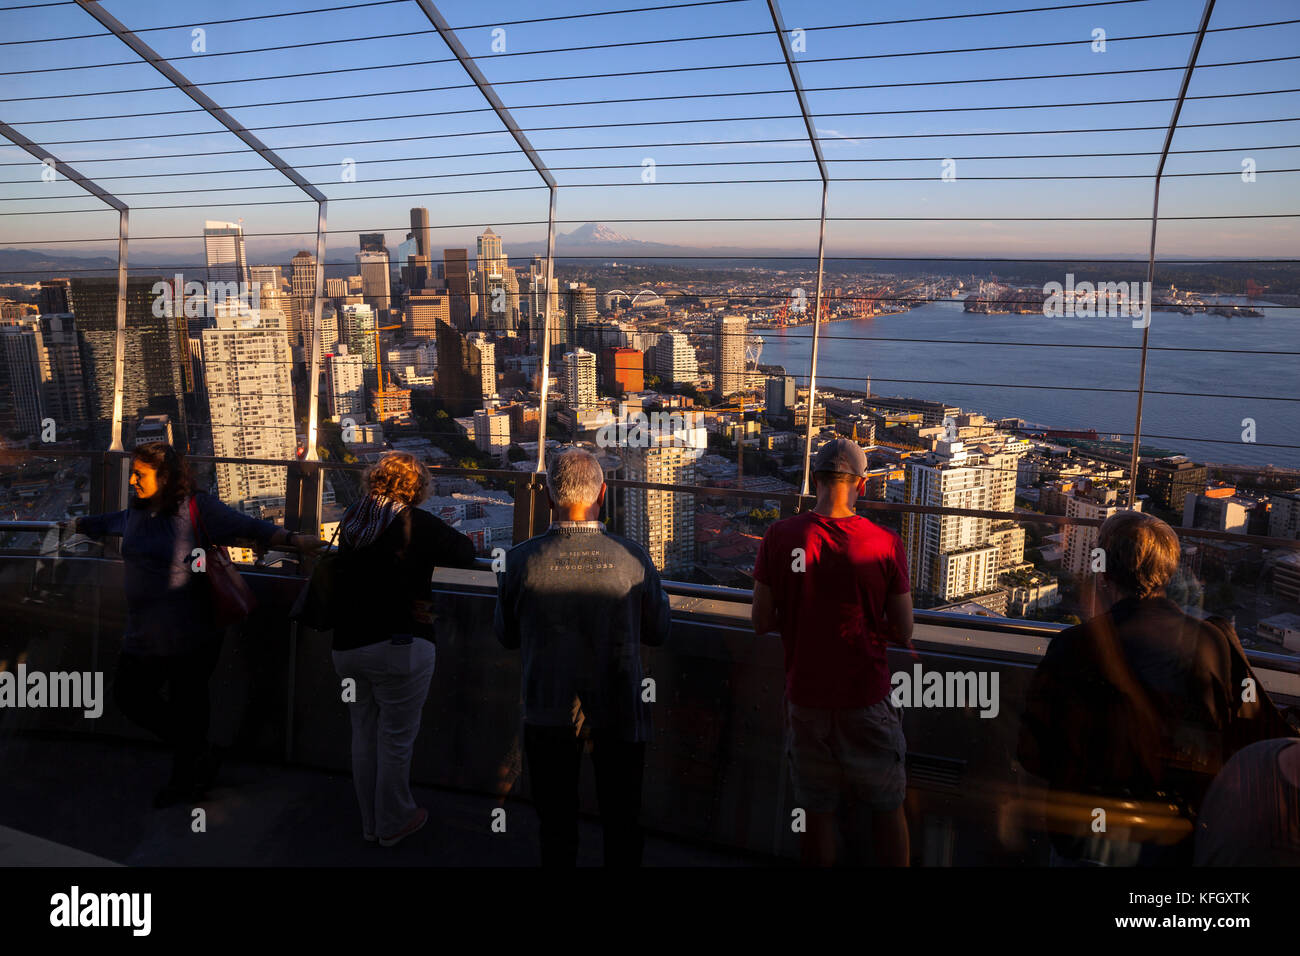 WA14147-00...WASHINGTON - View of Seattle with Mount Rainier in the distance from the observation deck of the Space - Stock Image